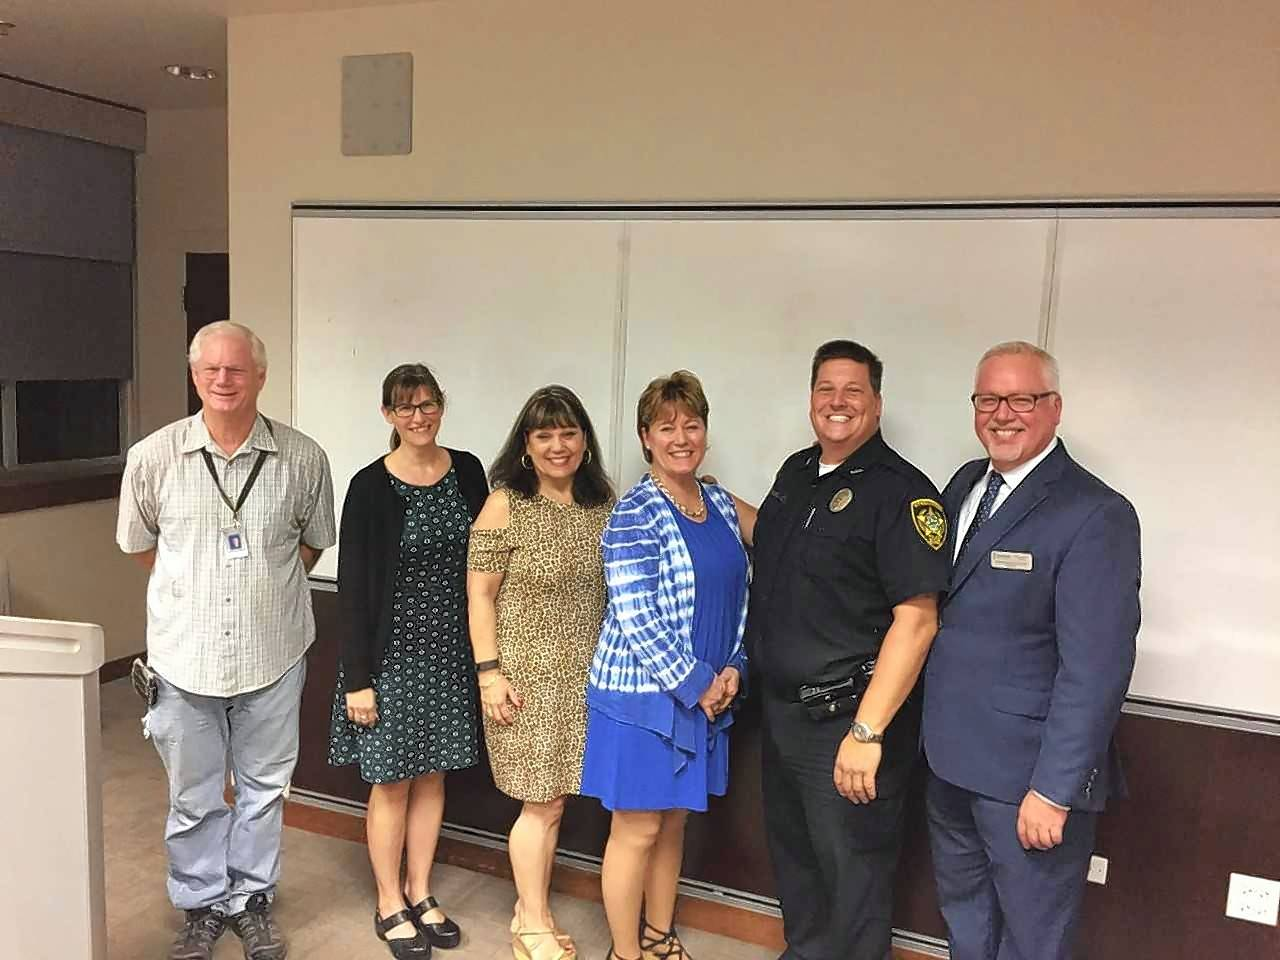 Pictured, from left, are Larry Winters, auditorium manager, Streamwood High School; Michele Chapman-Simmons, principal Streamwood High School; Mary Jo Imperato, Hanover Township Food Pantry; Terri Channer, WINGS; Officer Ed Polaski, DARE; and John Parquette, Hanover Township Youth & Family Services.